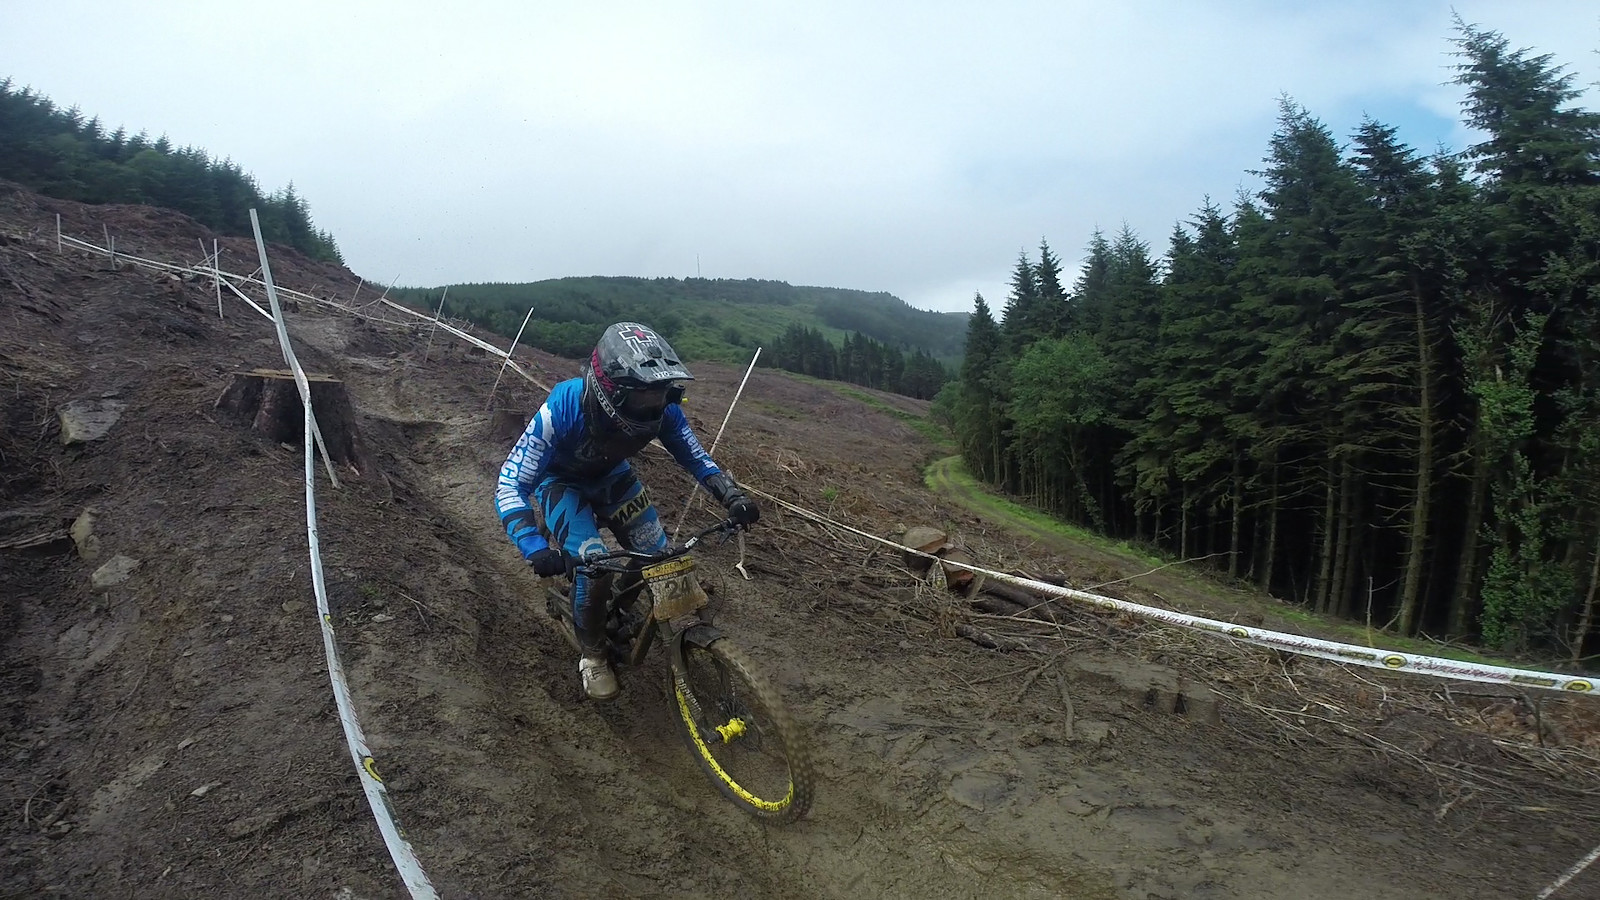 Mike Jones - Matthew Davies - Mountain Biking Pictures - Vital MTB